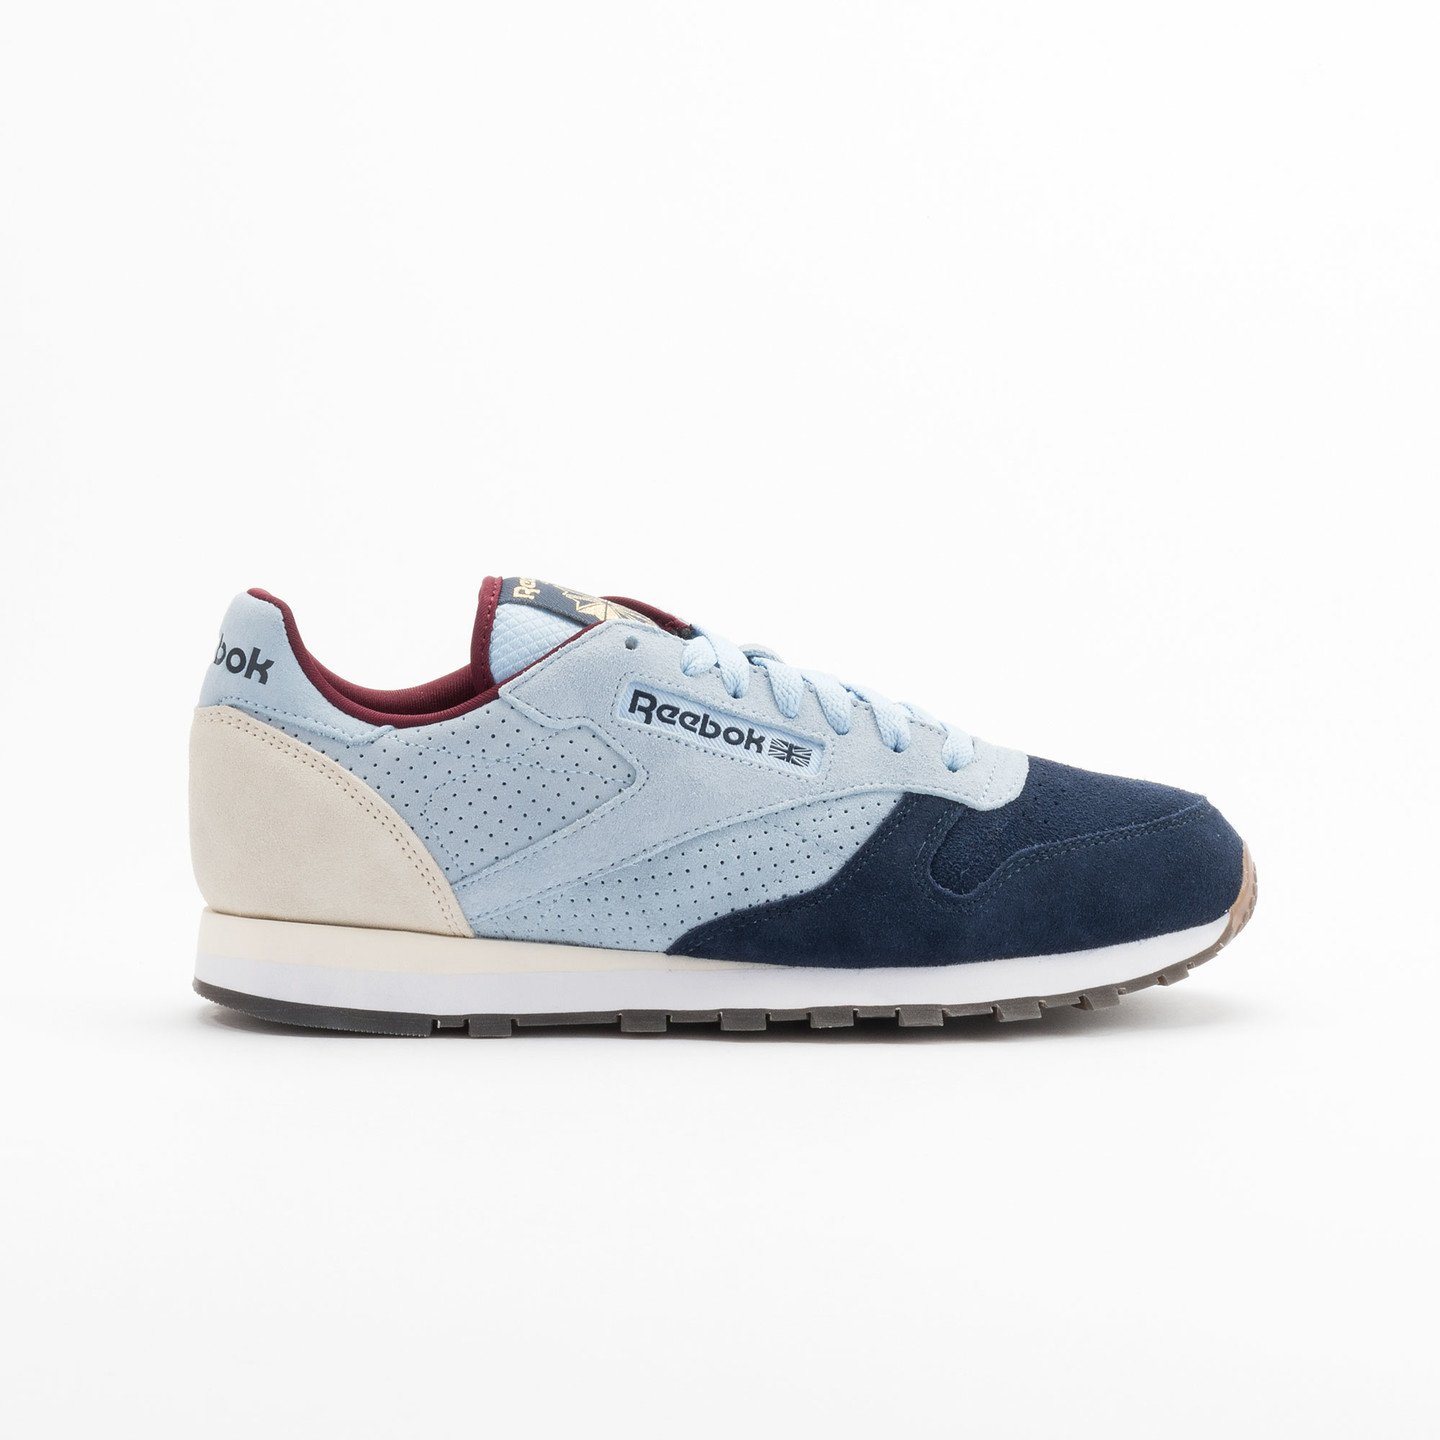 Reebok Classic Leather Int Navy / Light Blue / Sand V66829-47